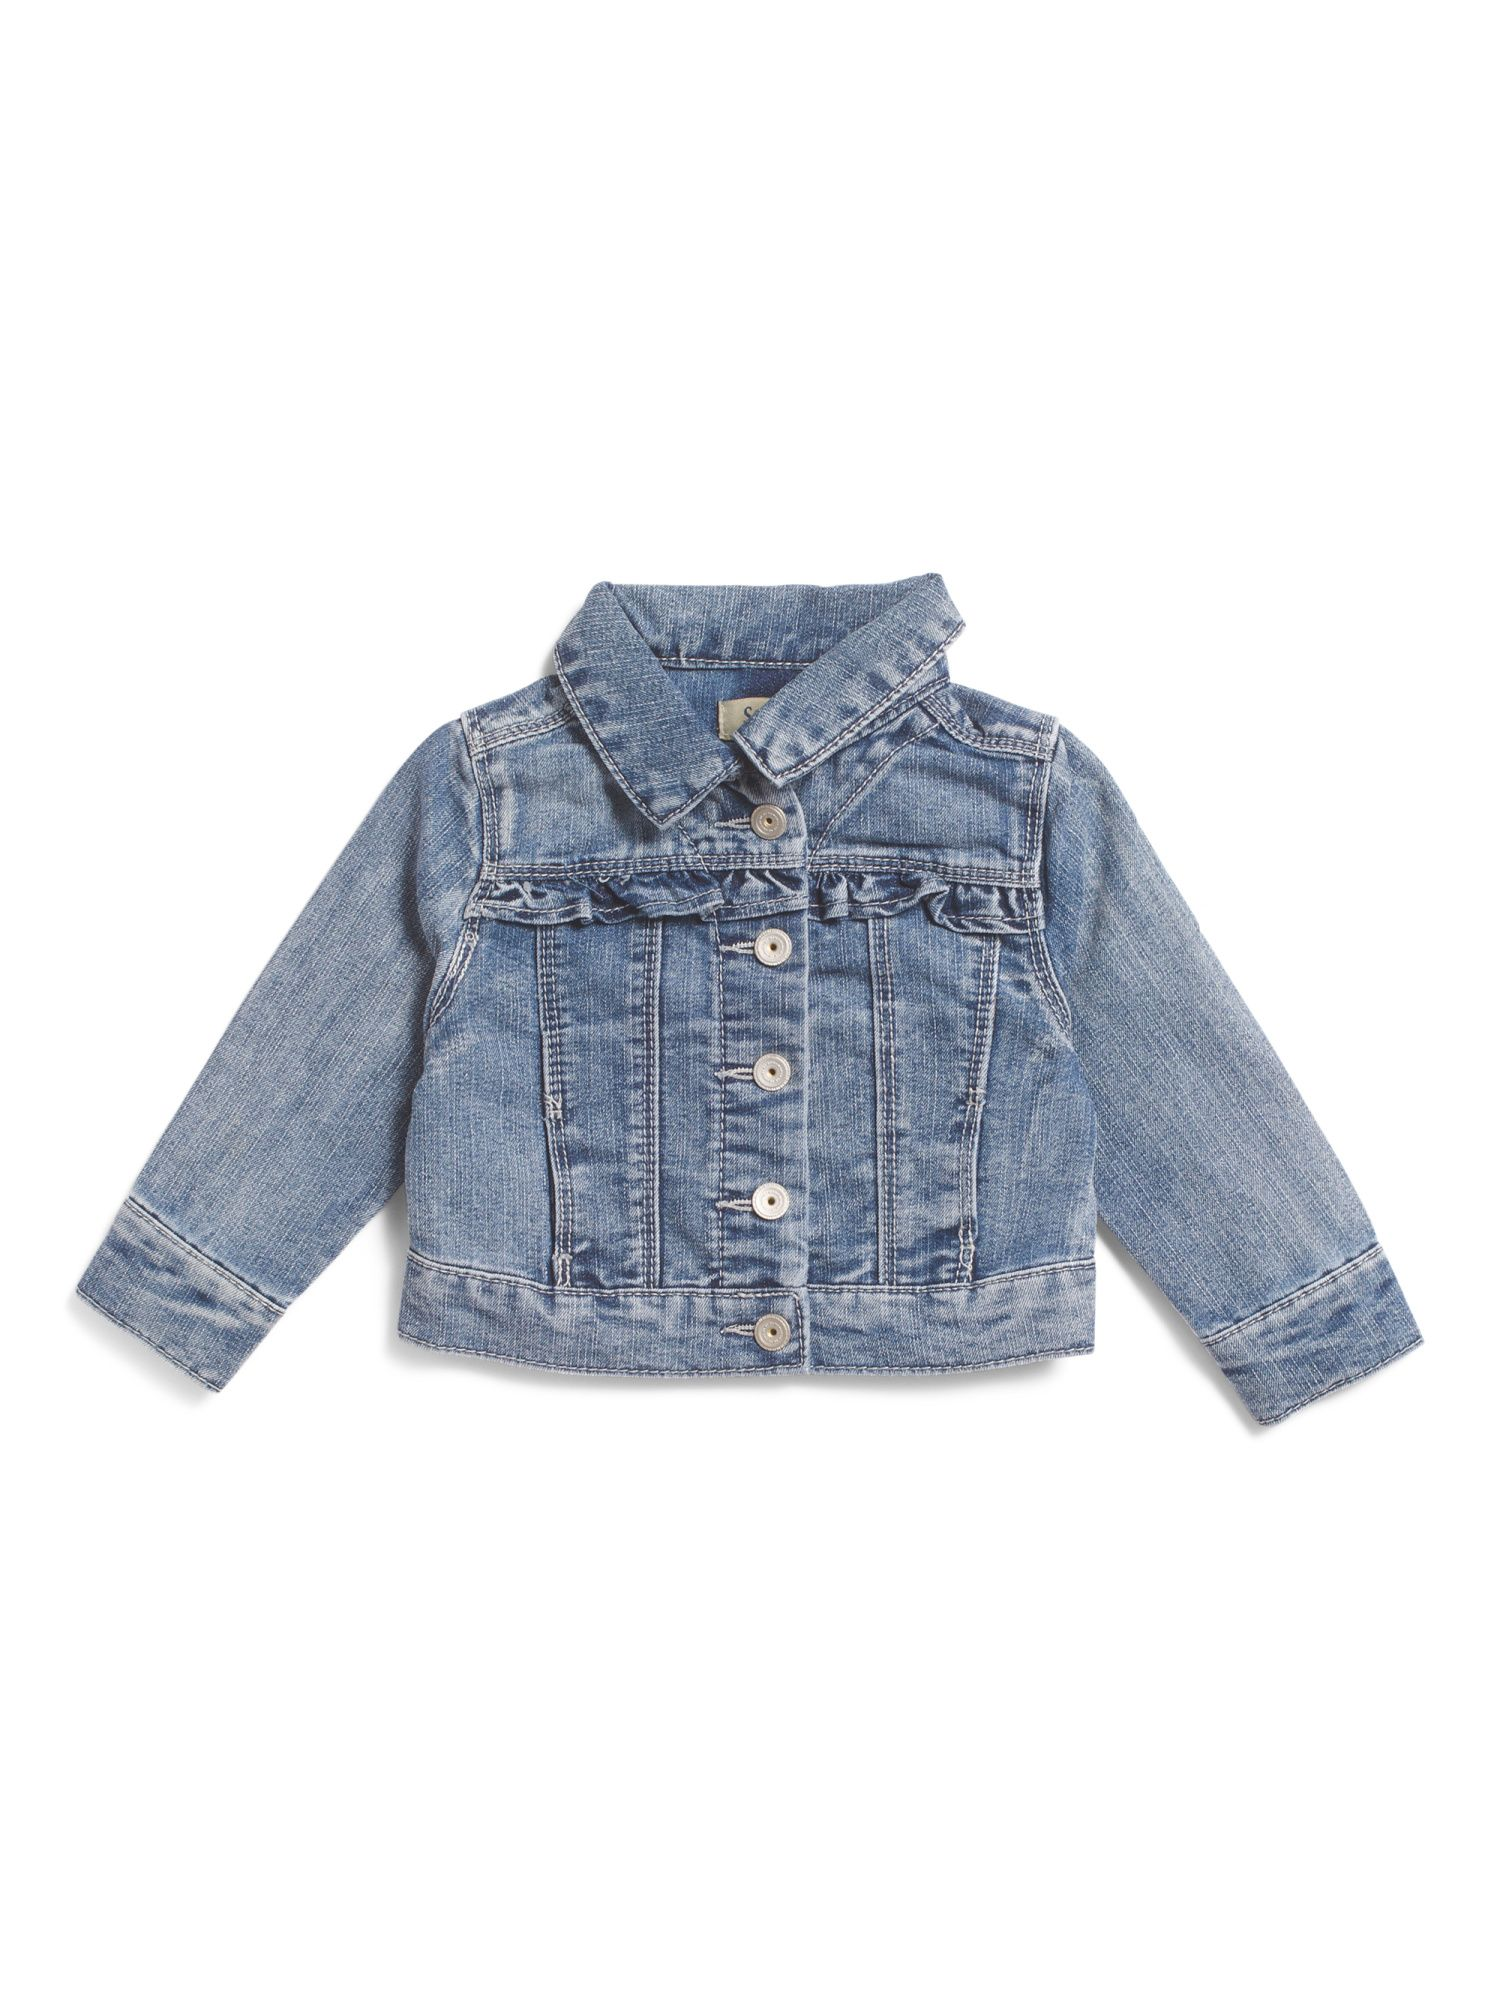 e84263f38 Toddler Girls Ruffle Trim Denim Jacket | non-existent chil'ren ...